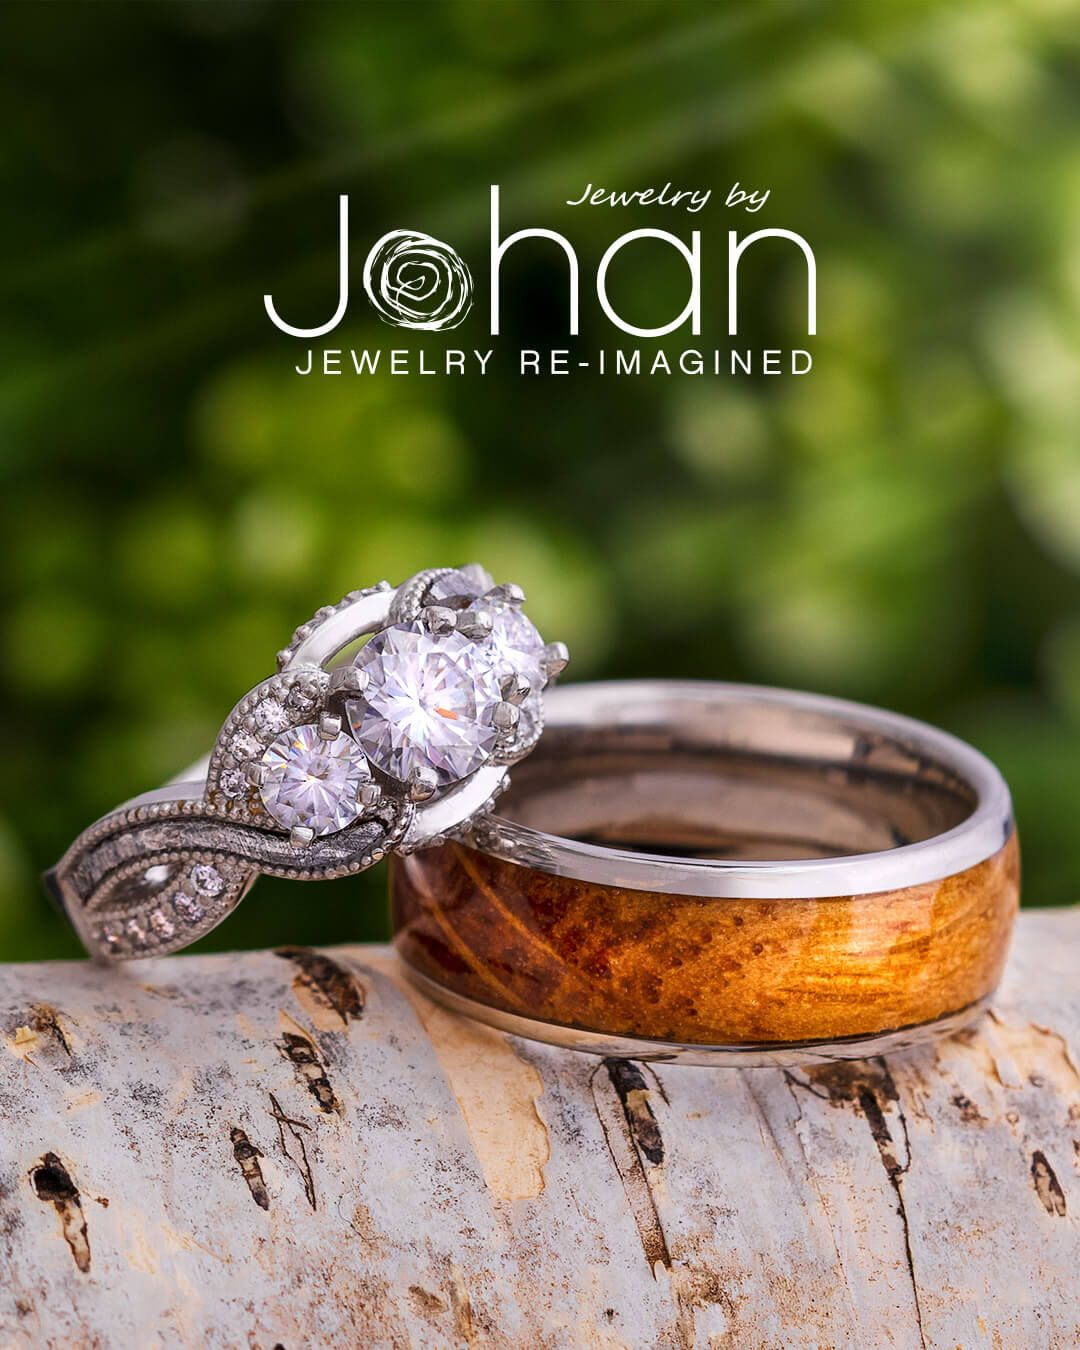 Exotic inlays like Gibeon meteorite and whiskey barrel oak wood make our custom #engagementring and #weddingband designs truly one of a kind. #JewelrybyJohan